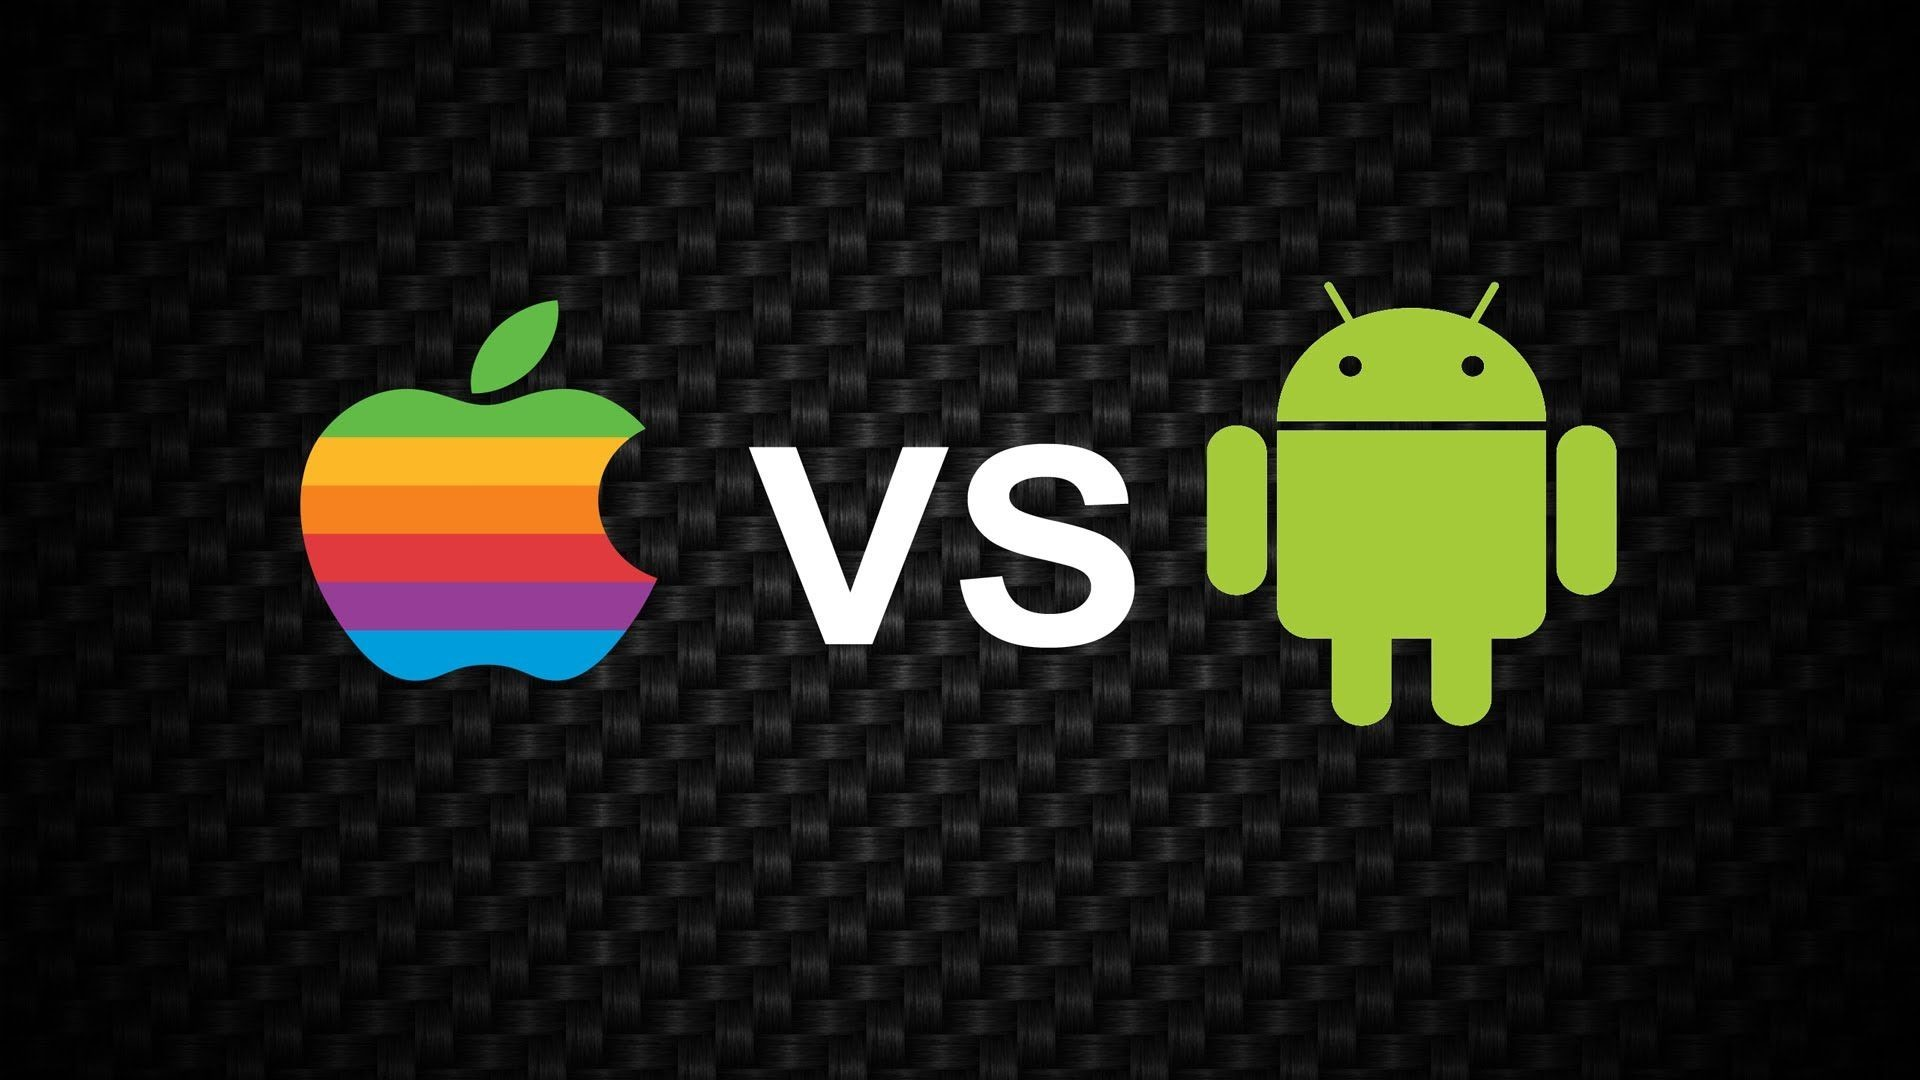 Android Vs Apple Wallpapers 74 Background Pictures